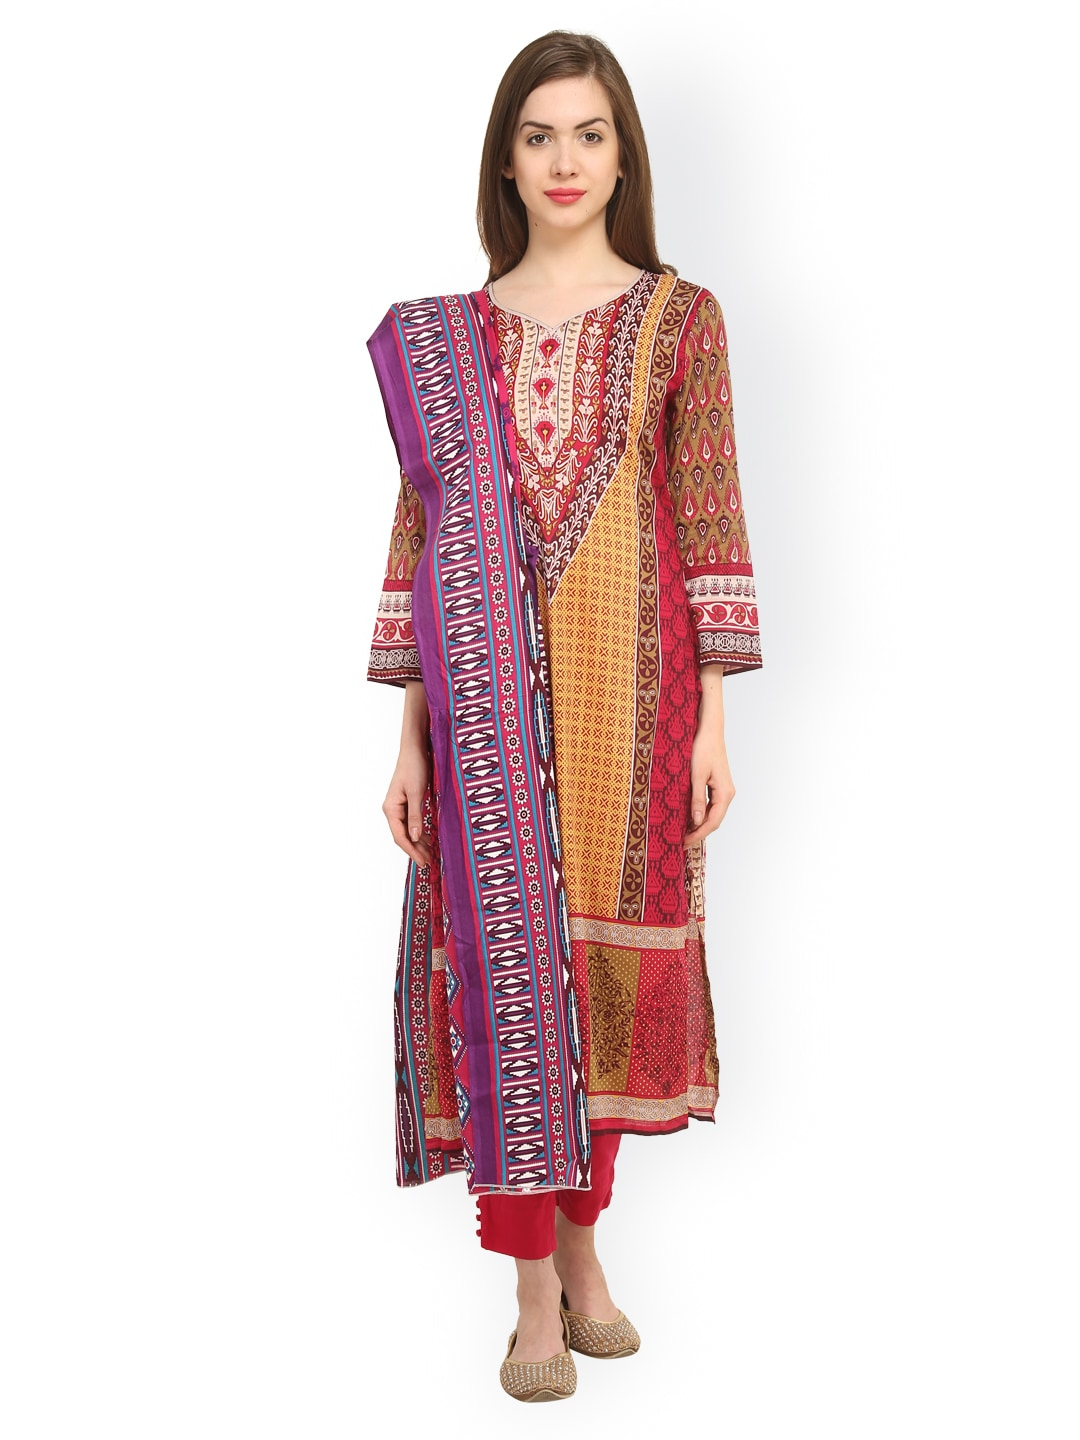 Uptown Galeria Brown & Pink Printed Pakistani Cotton Lawn Unstitched Dress Material